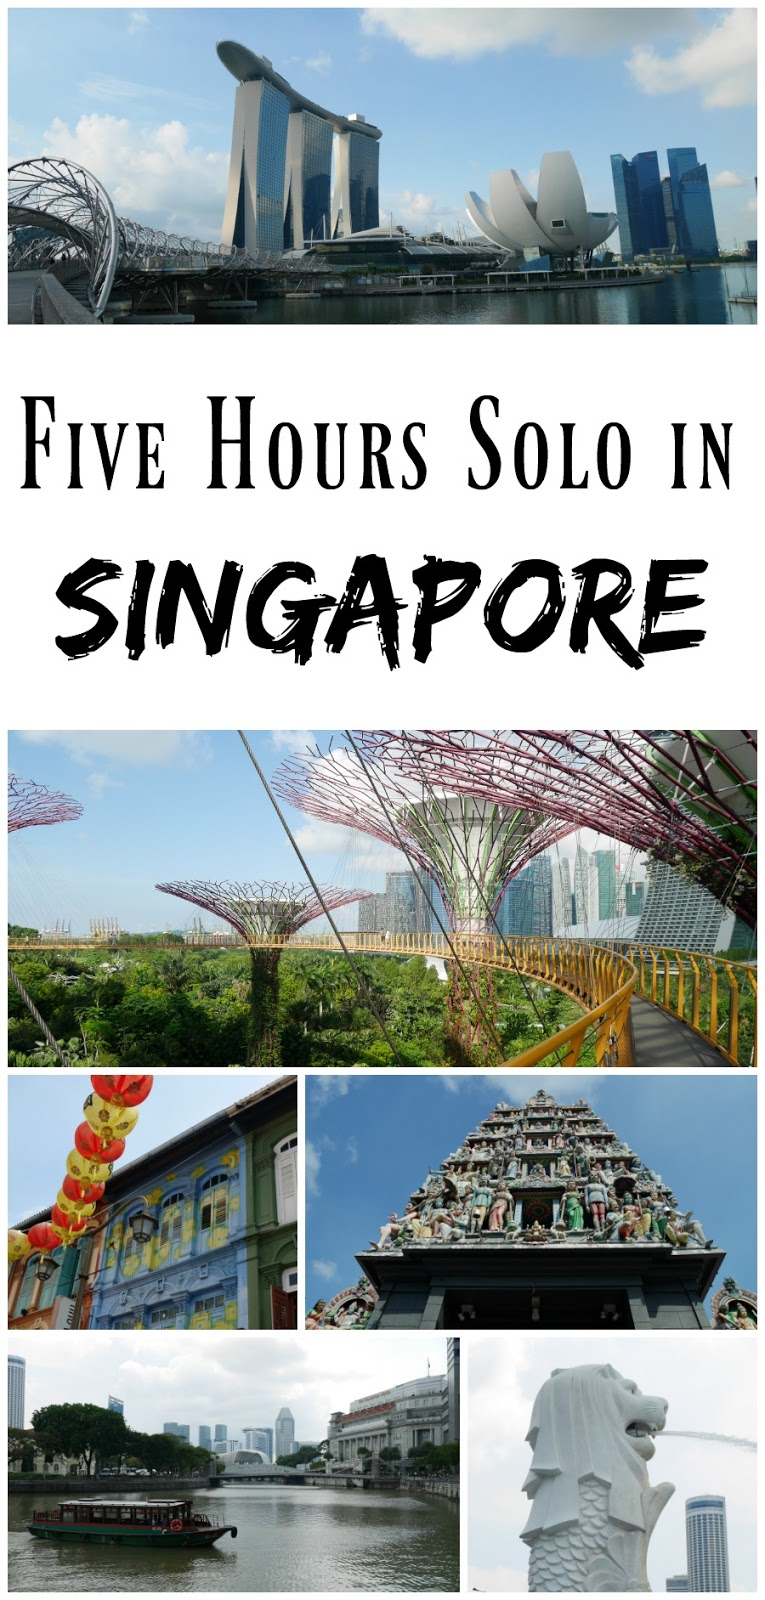 PIN FOR LATER: Five Hours Solo in Singapore - Making the Most of a Long Transfer Through Singapore!